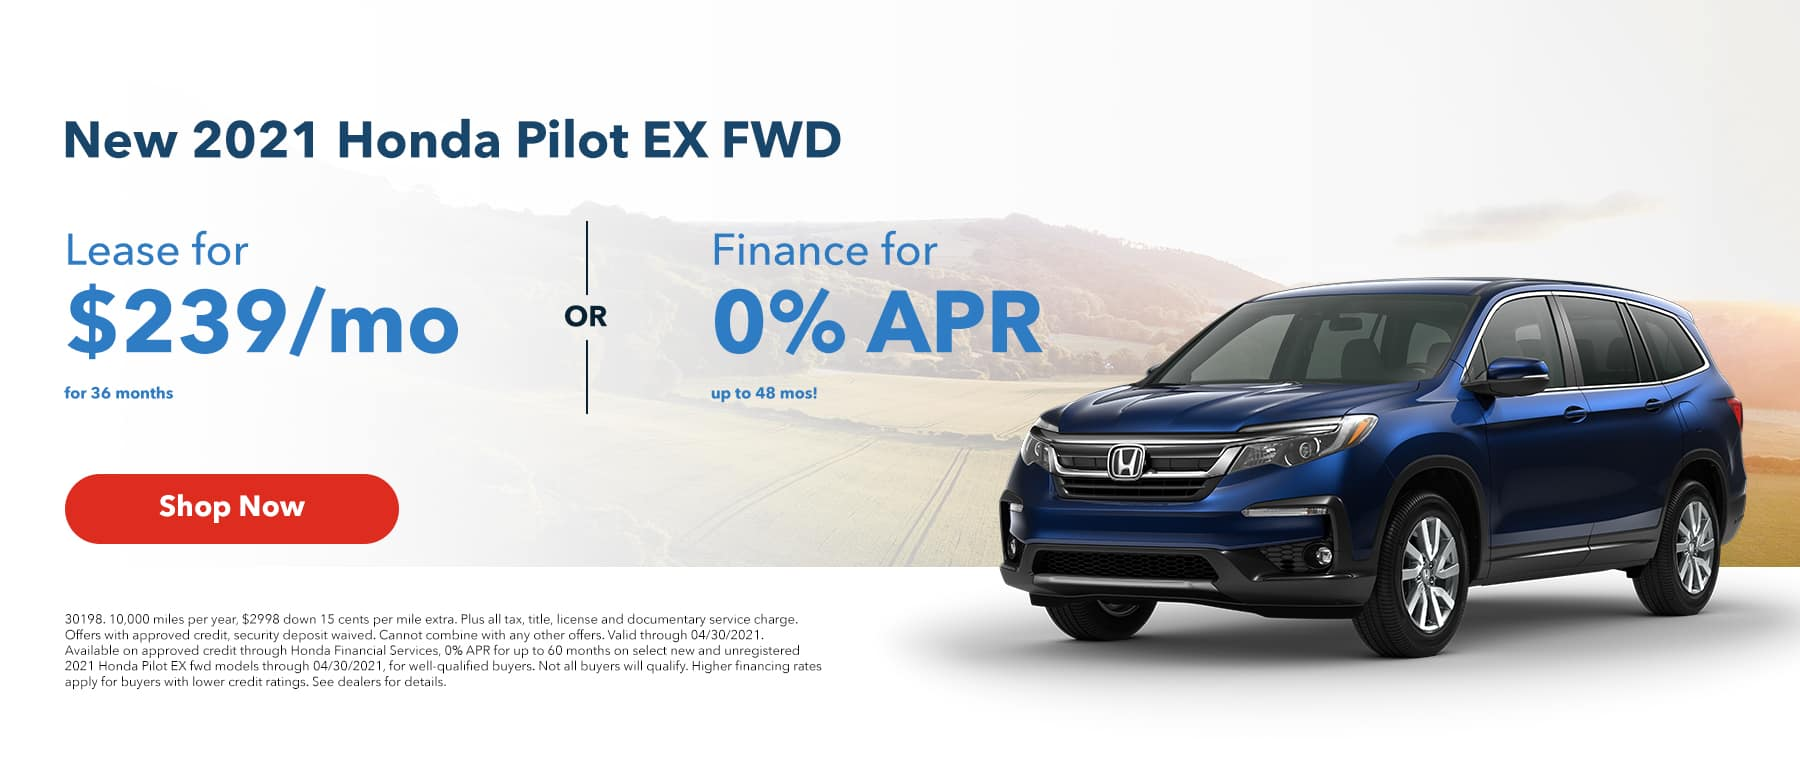 Lease a 2021 Honda Pilot EX fwd for $239/mo for 36mos or Finance for 0% APR up to 48mos!